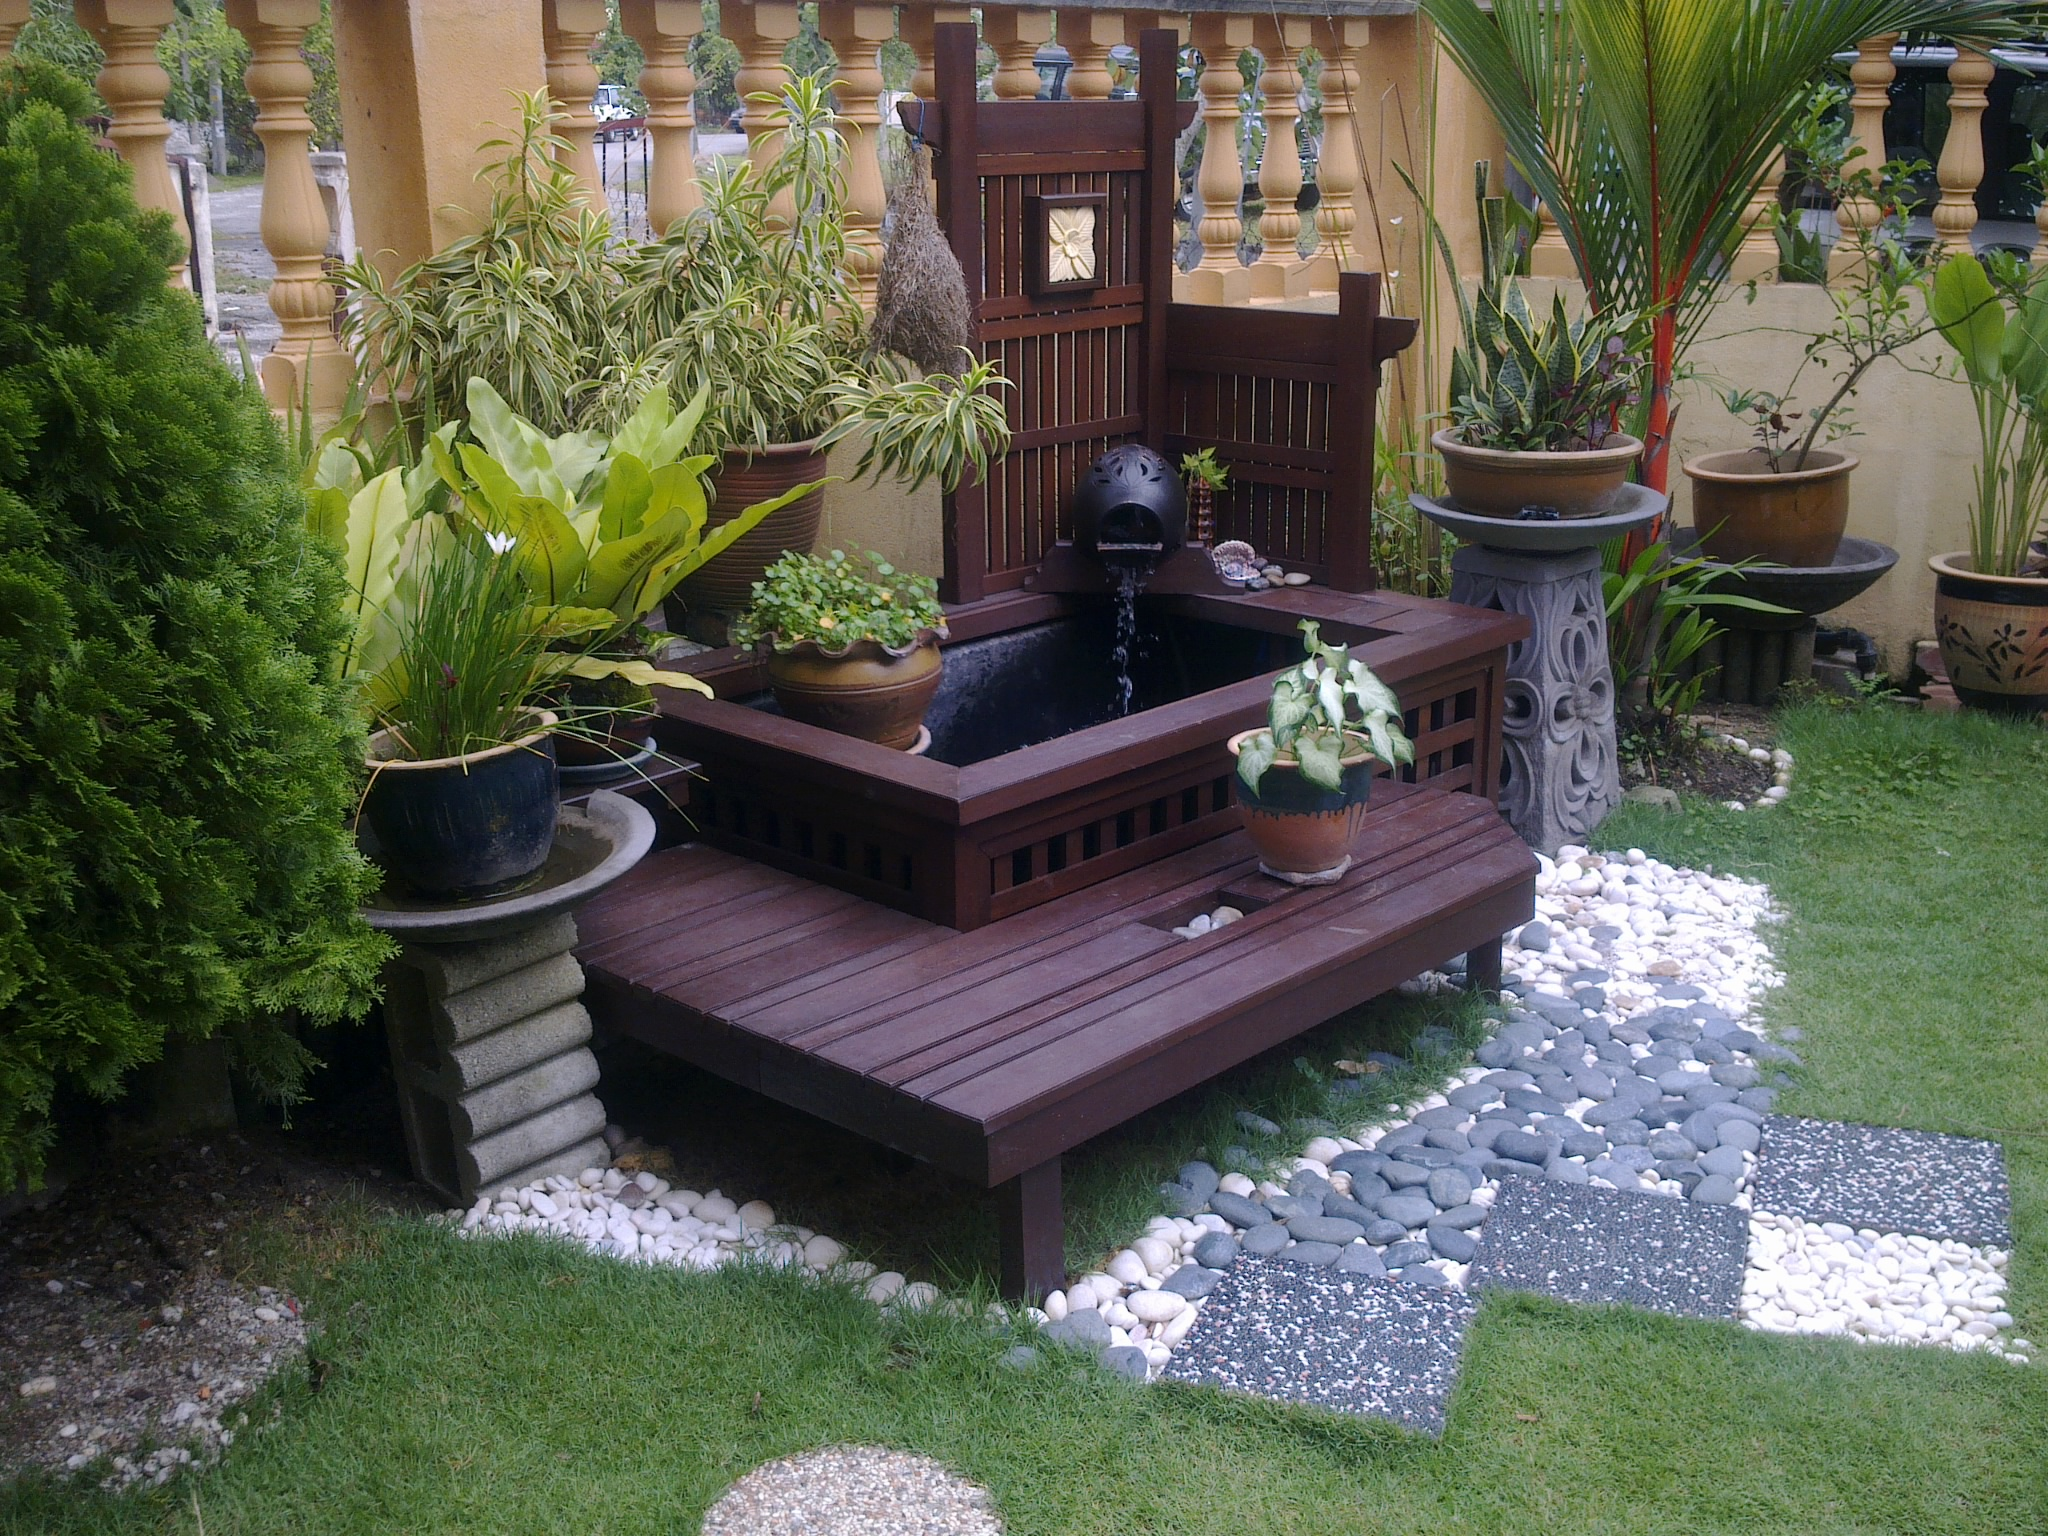 Adorable Simple Front Yard Fountains Design With Wooden Deck In Dark Tone Potted Plants And